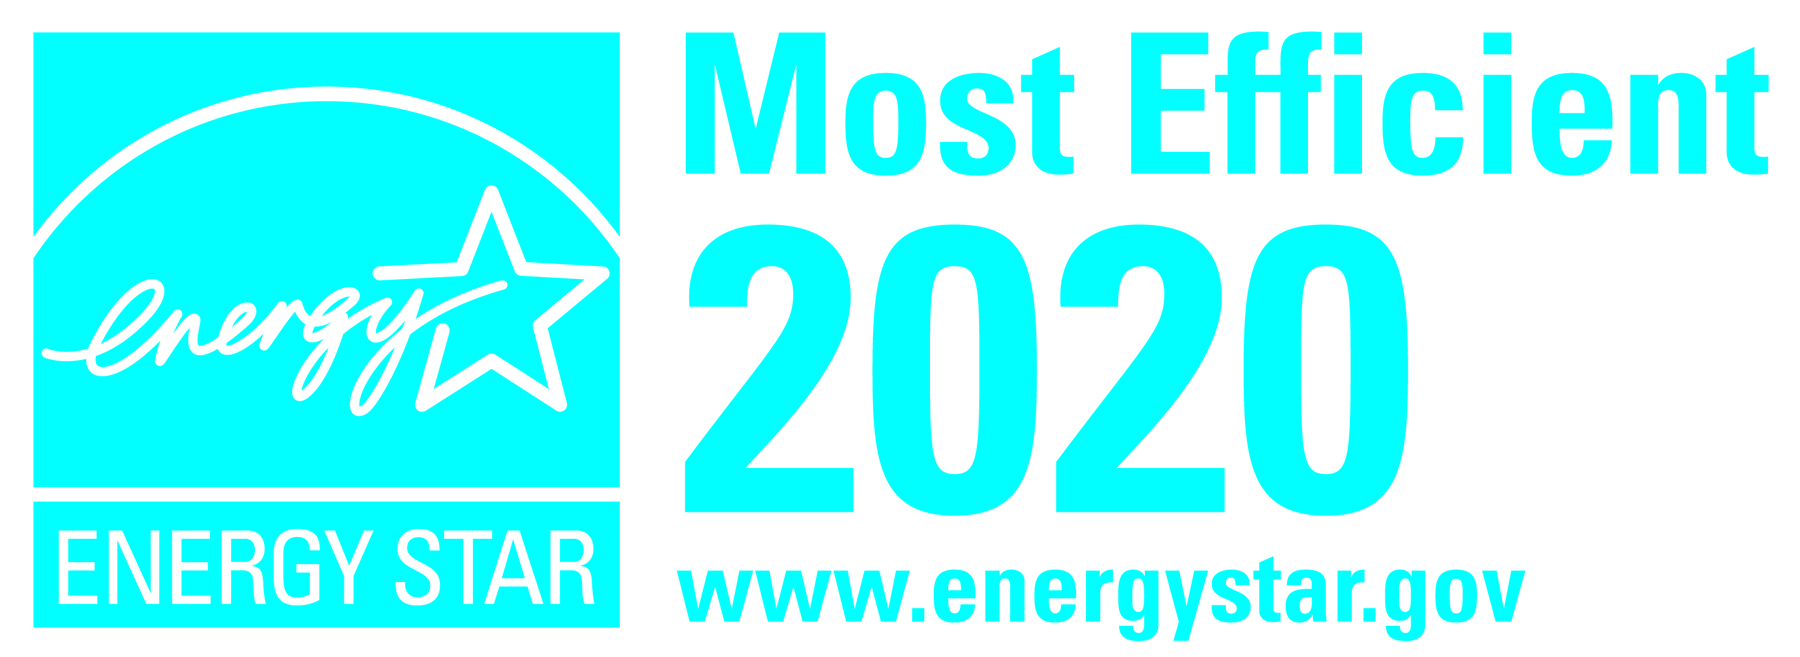 ENERGY STAR® Most Efficient